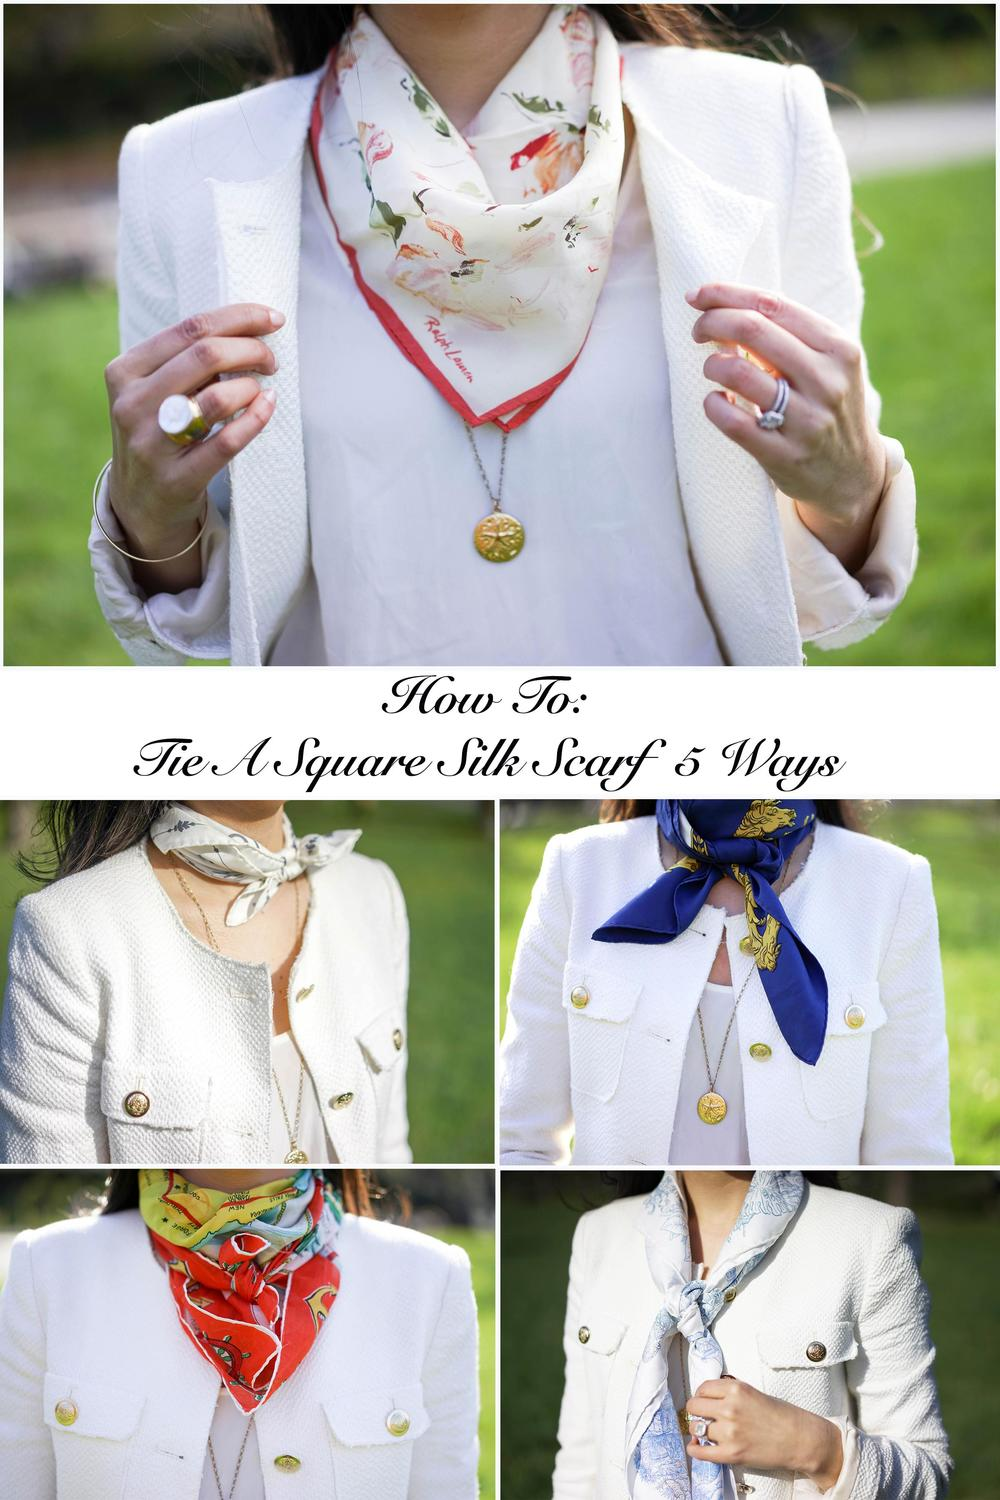 How to tie a square silk scarf 5 ways about how to tie a how to tie a square silk scarf 5 ways ccuart Choice Image